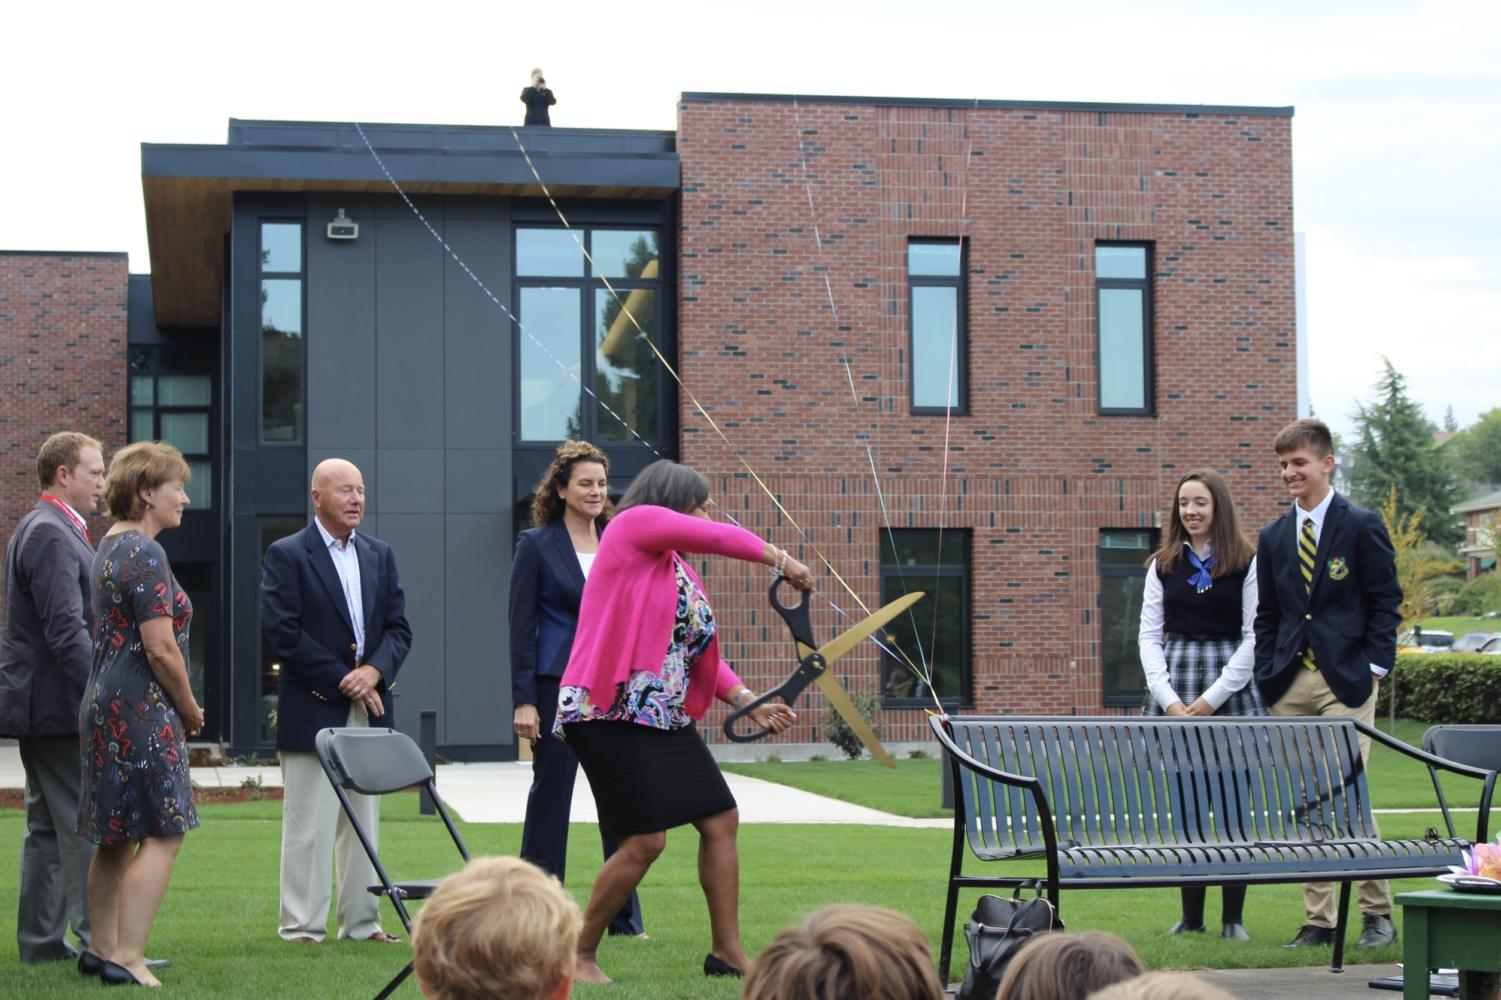 Tacoma Mayor Victoria Woodards cuts the ribbons, representing Annie Wright's four tie colors, officially opening the new Upper School for Boys building.